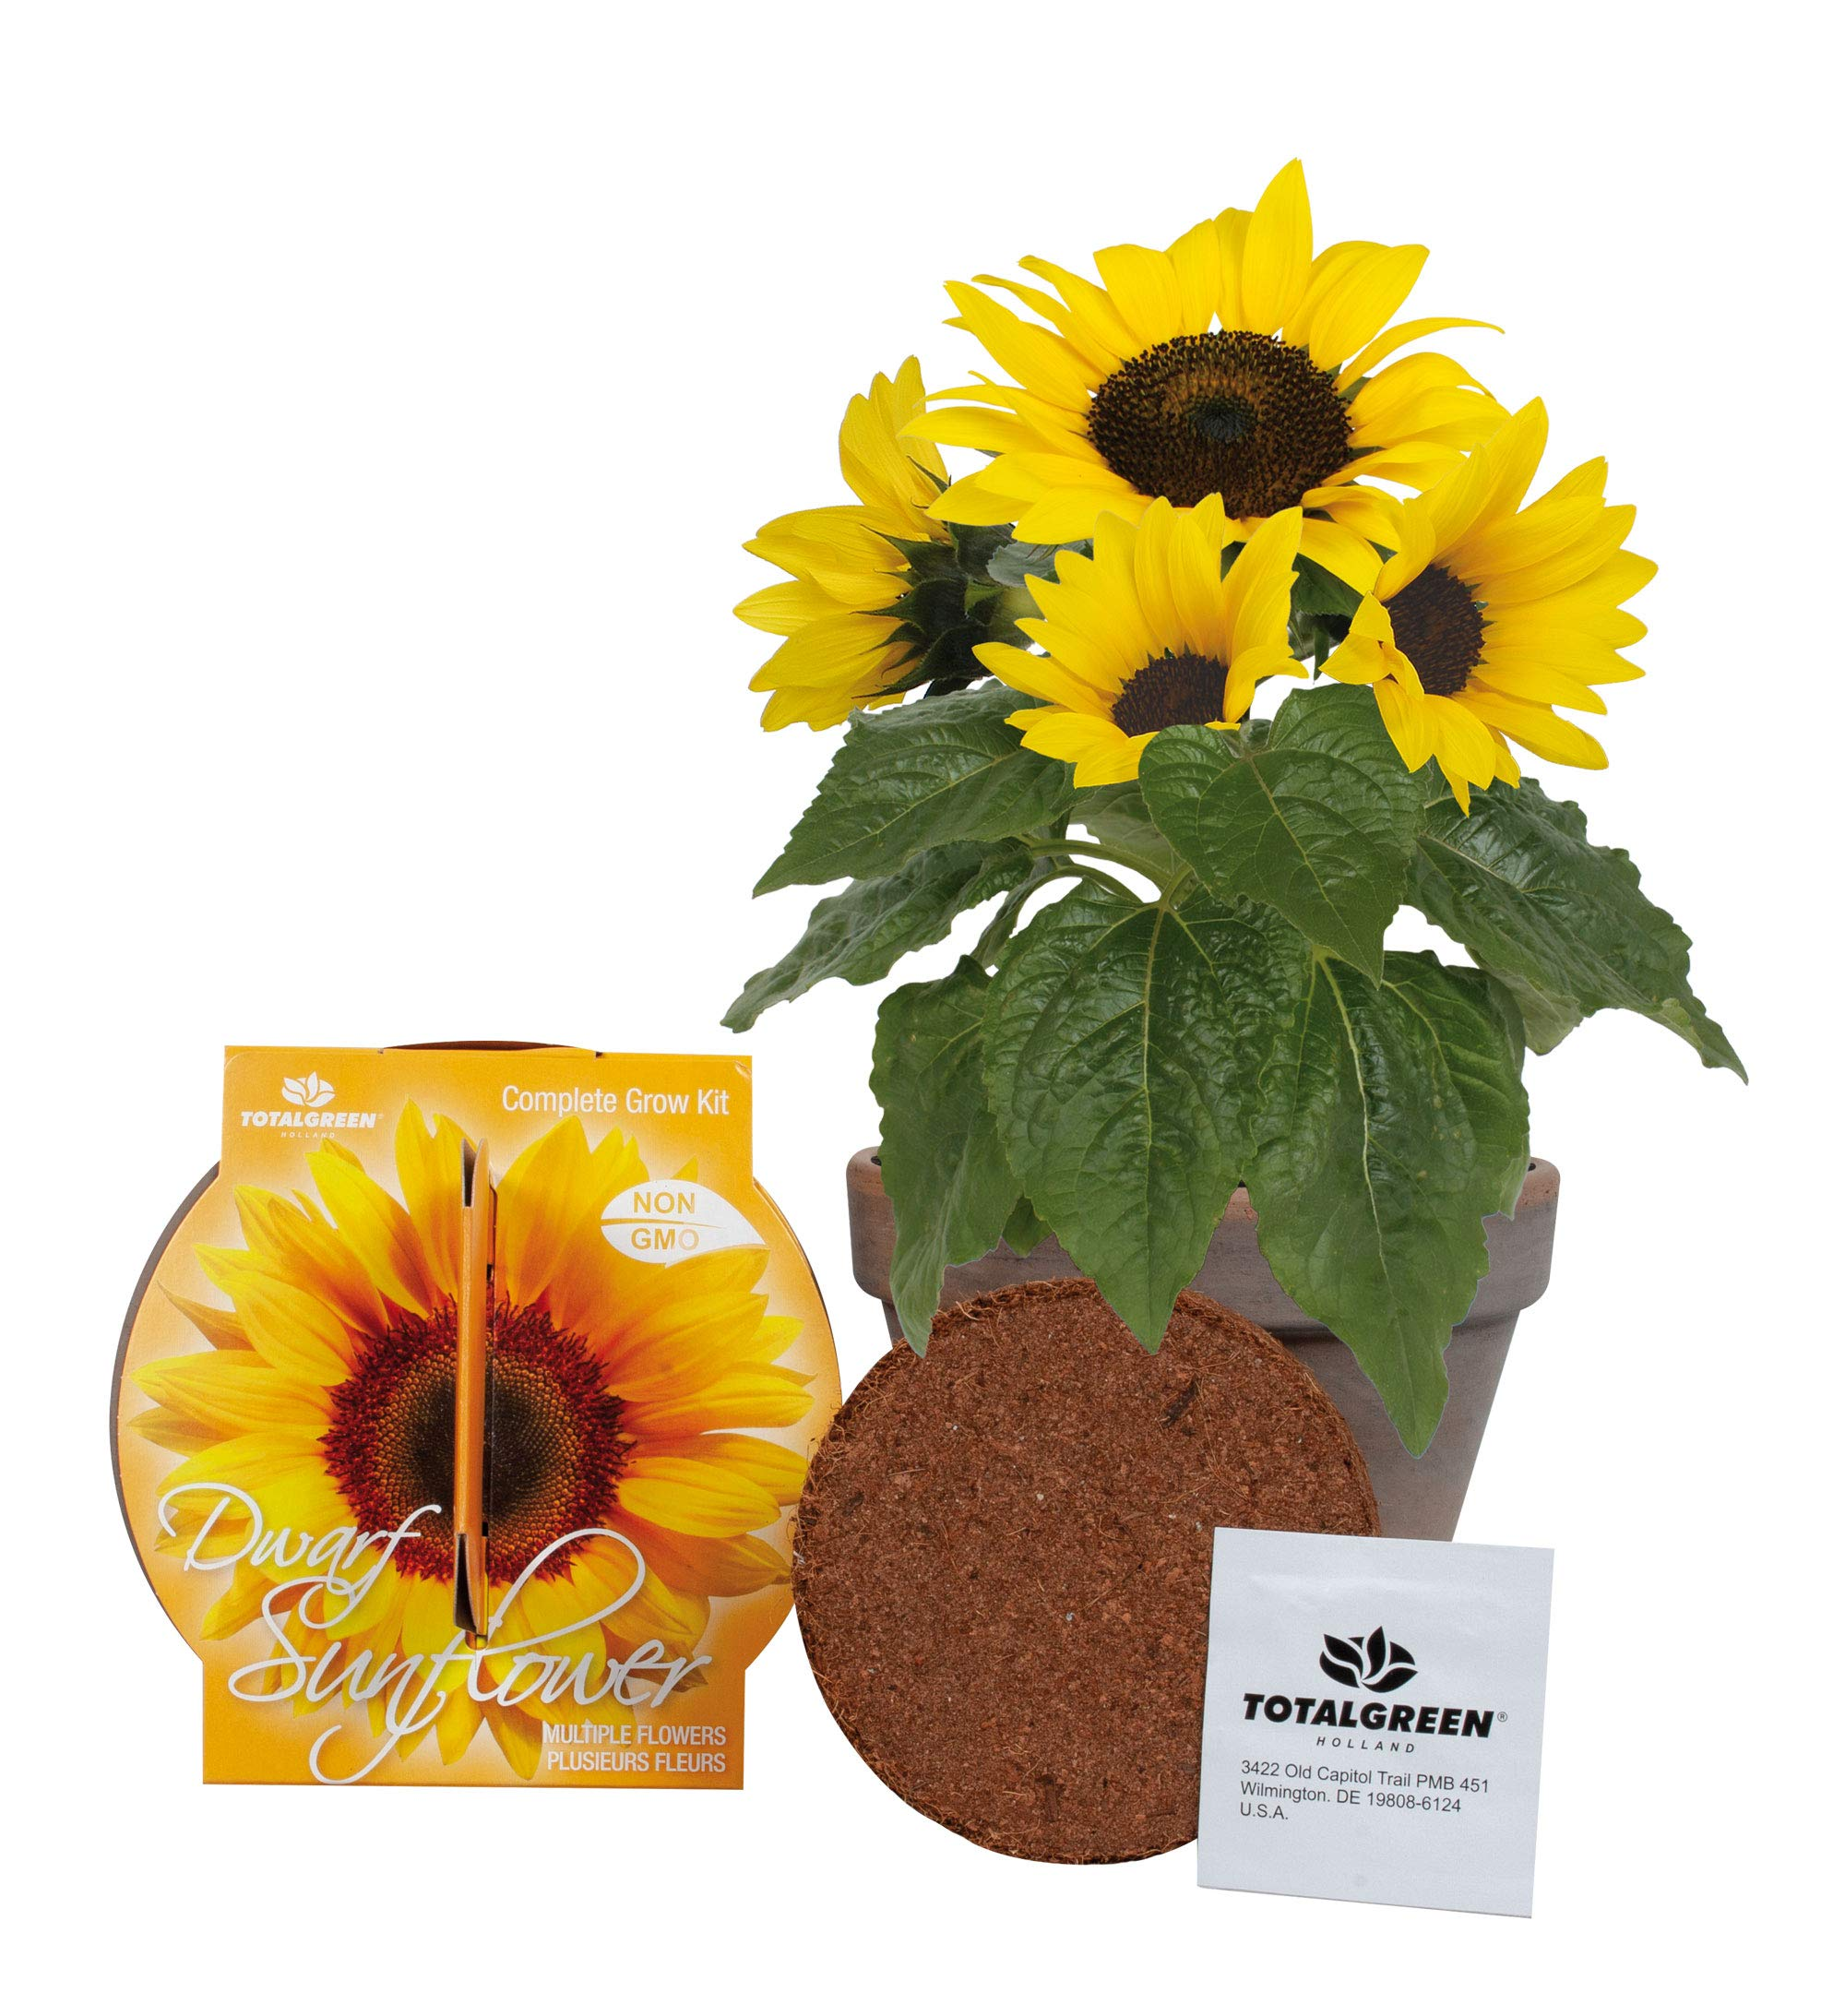 Quality Sunflower Grow Kit | Grow Your Own Unique Dwarf Sunflower from Seed in Just A Few Weeks | Unique Basalt Pot, Non-GMO Mother's Day Gardening Kit with Easy Instructions |